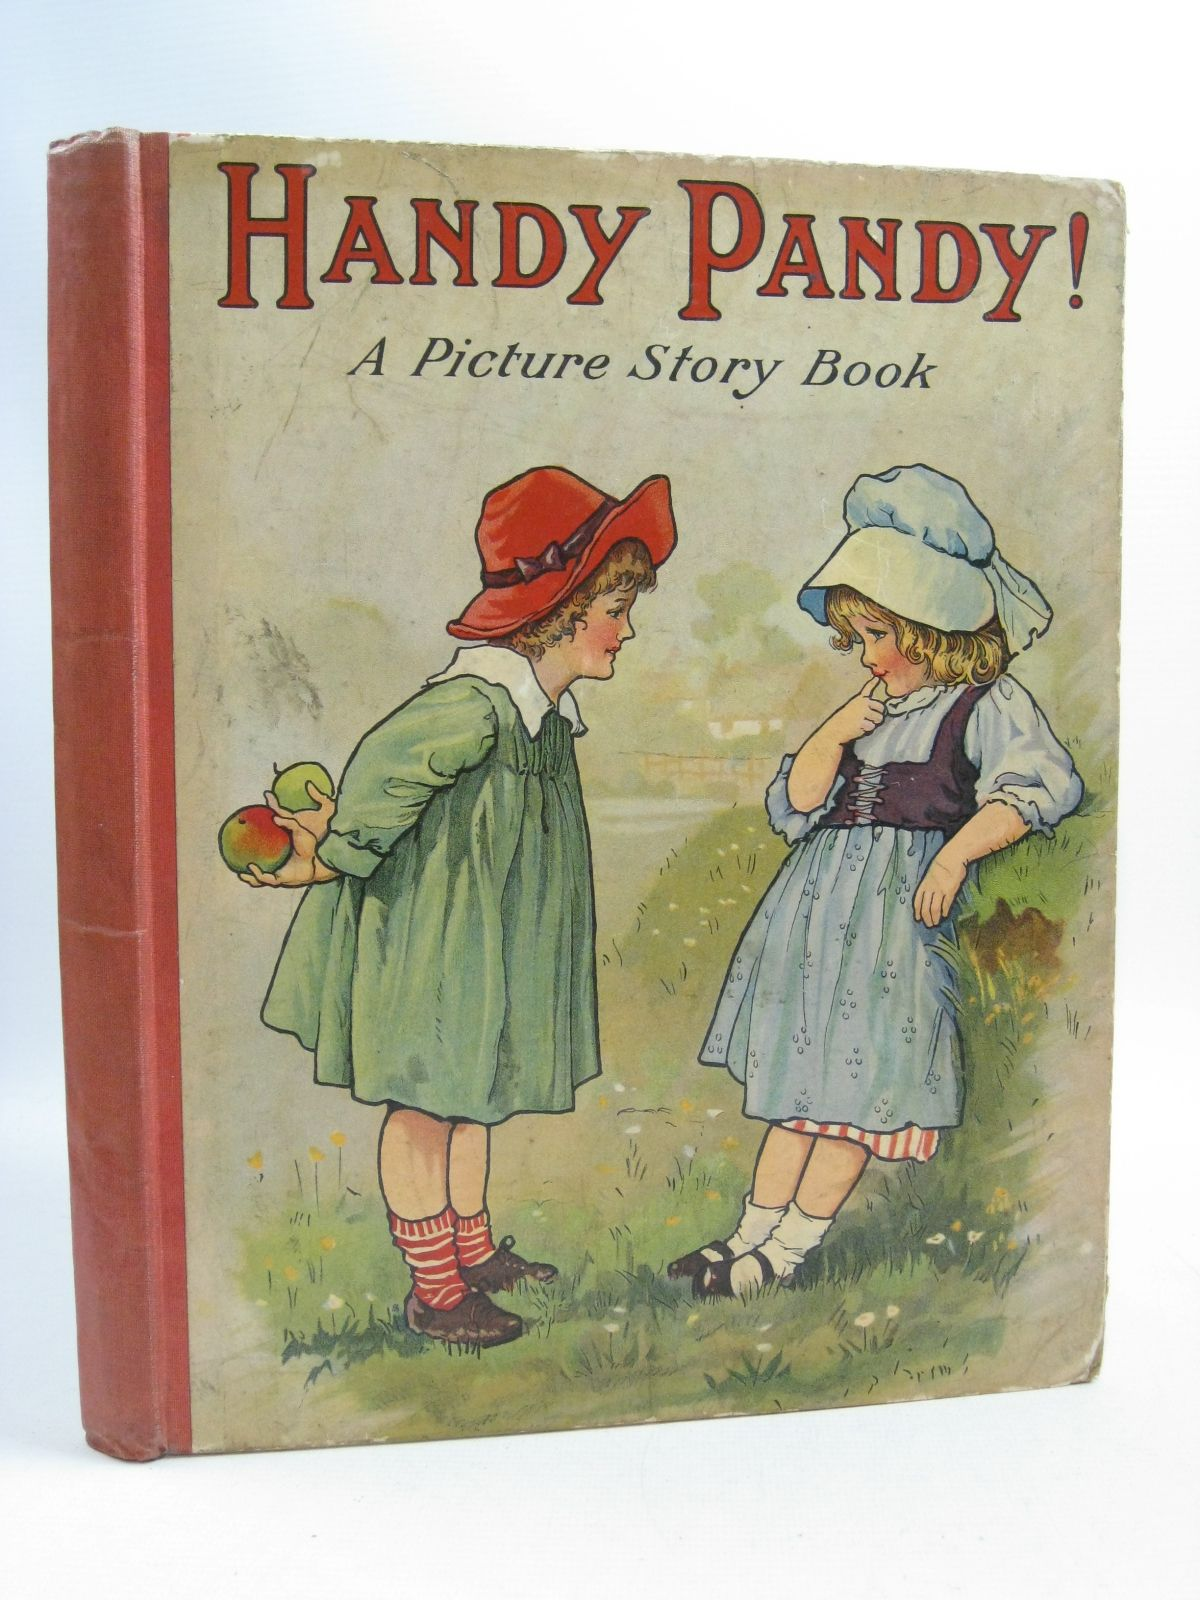 Photo of HANDY PANDY! A PICTURE STORY BOOK written by Pembury, A. Sew, Y.B. et al, illustrated by Aris, Ernest A. Lambert, H.G.C. Marsh Bowley, M. Wain, Louis et al., published by S.W. Partridge & Co. Ltd. (STOCK CODE: 1315070)  for sale by Stella & Rose's Books